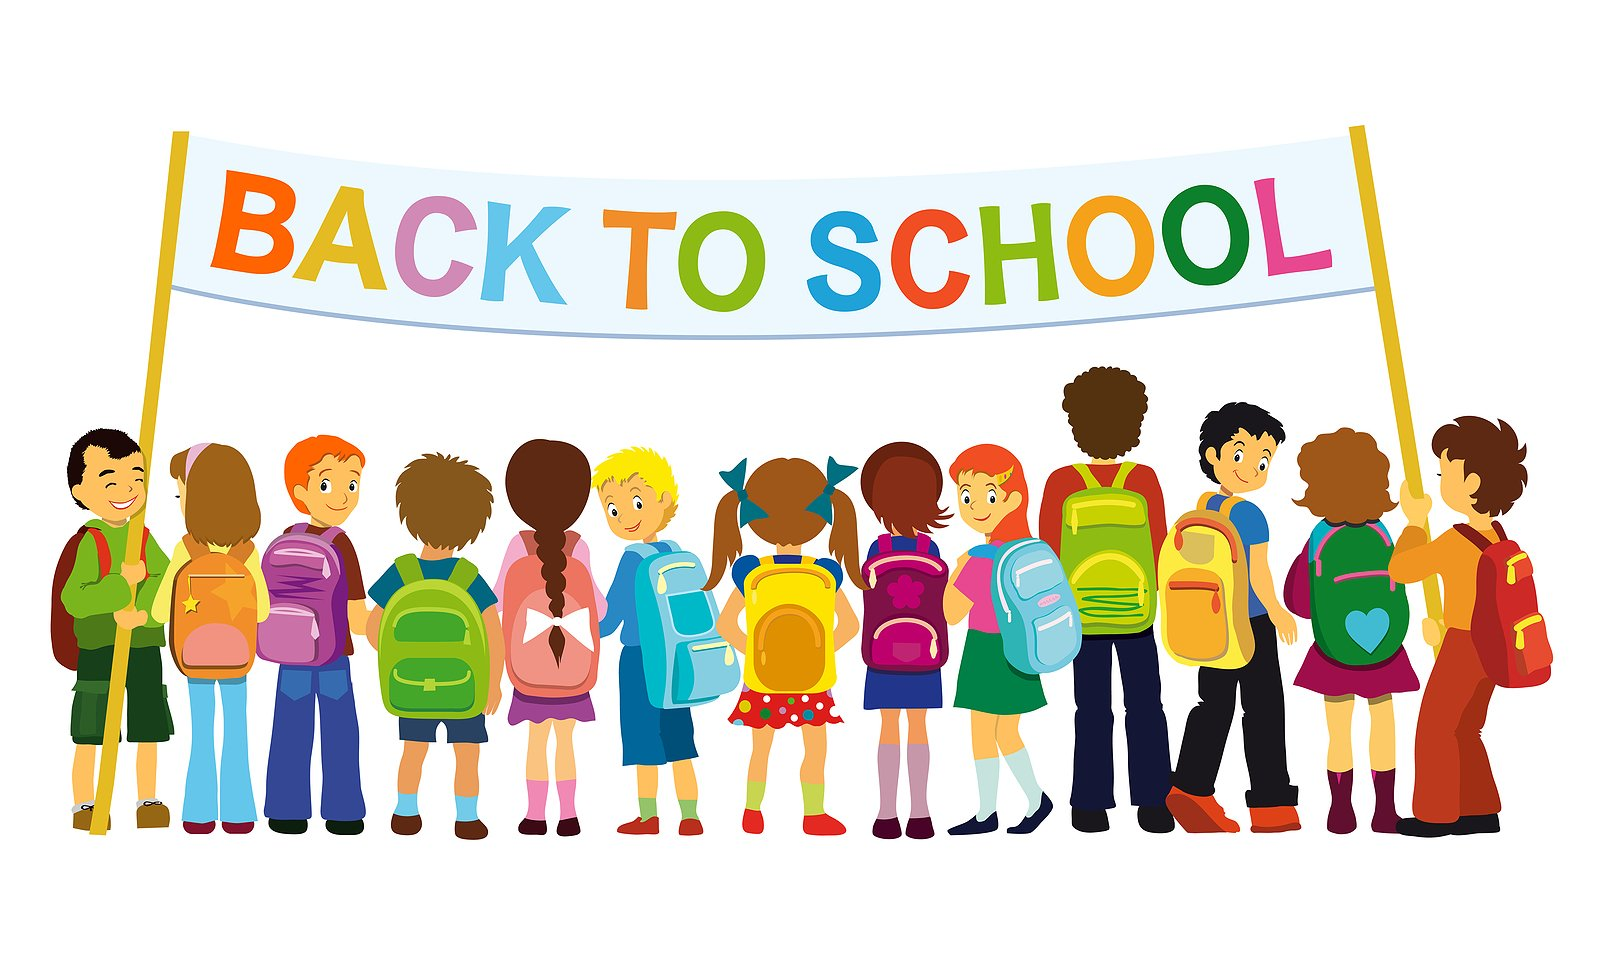 Back to school clipart 2